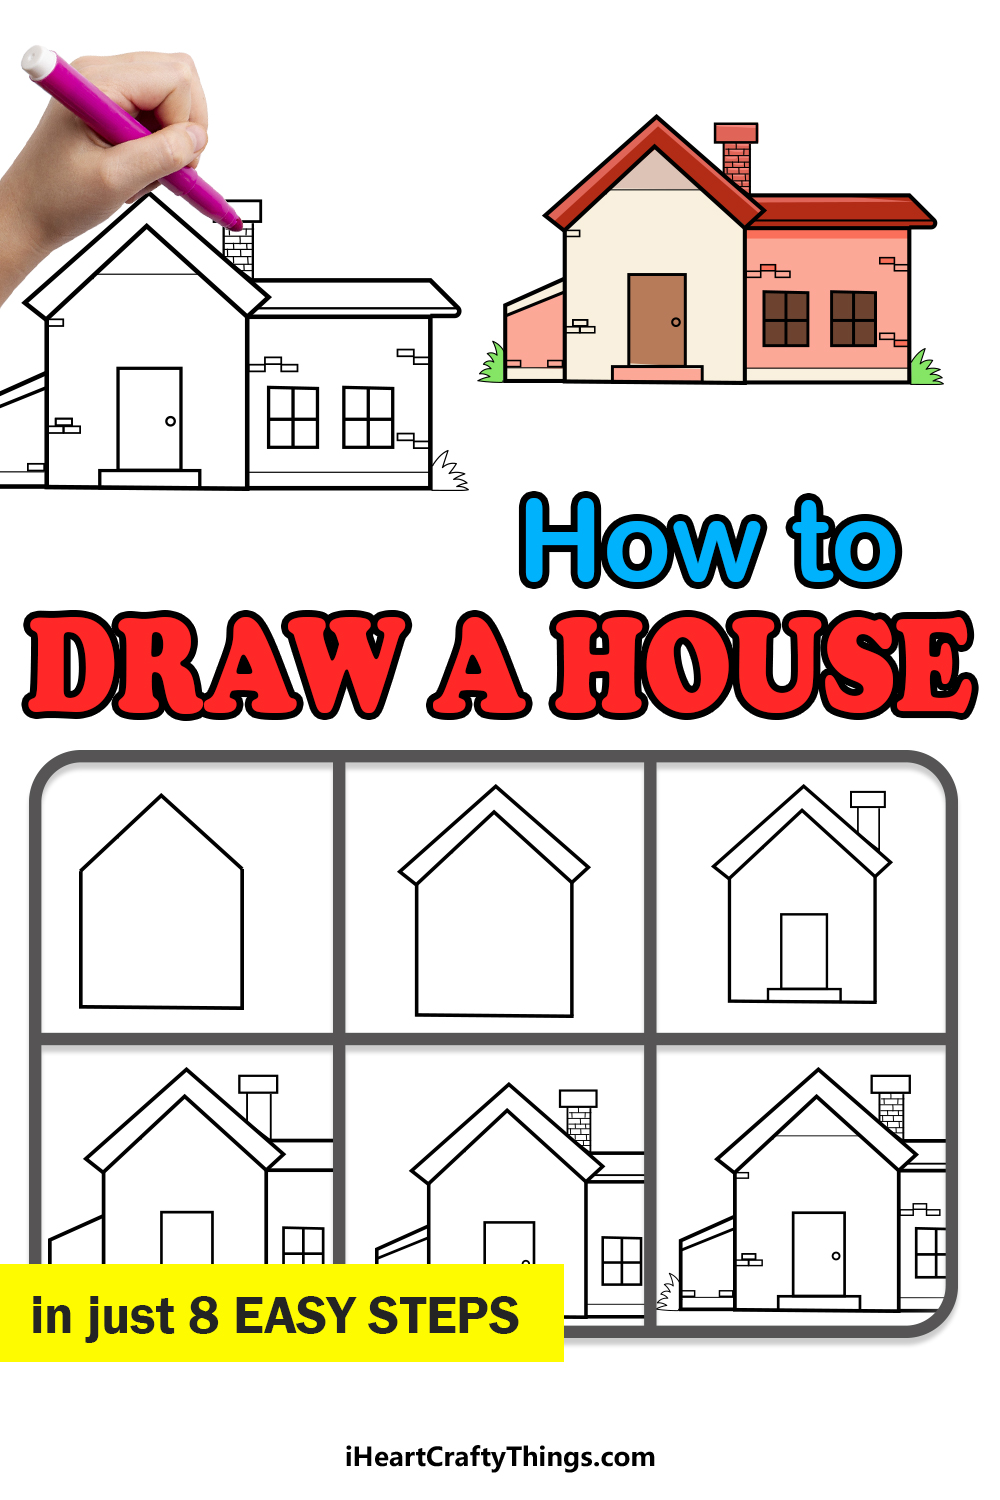 how to draw a house in 8 easy steps